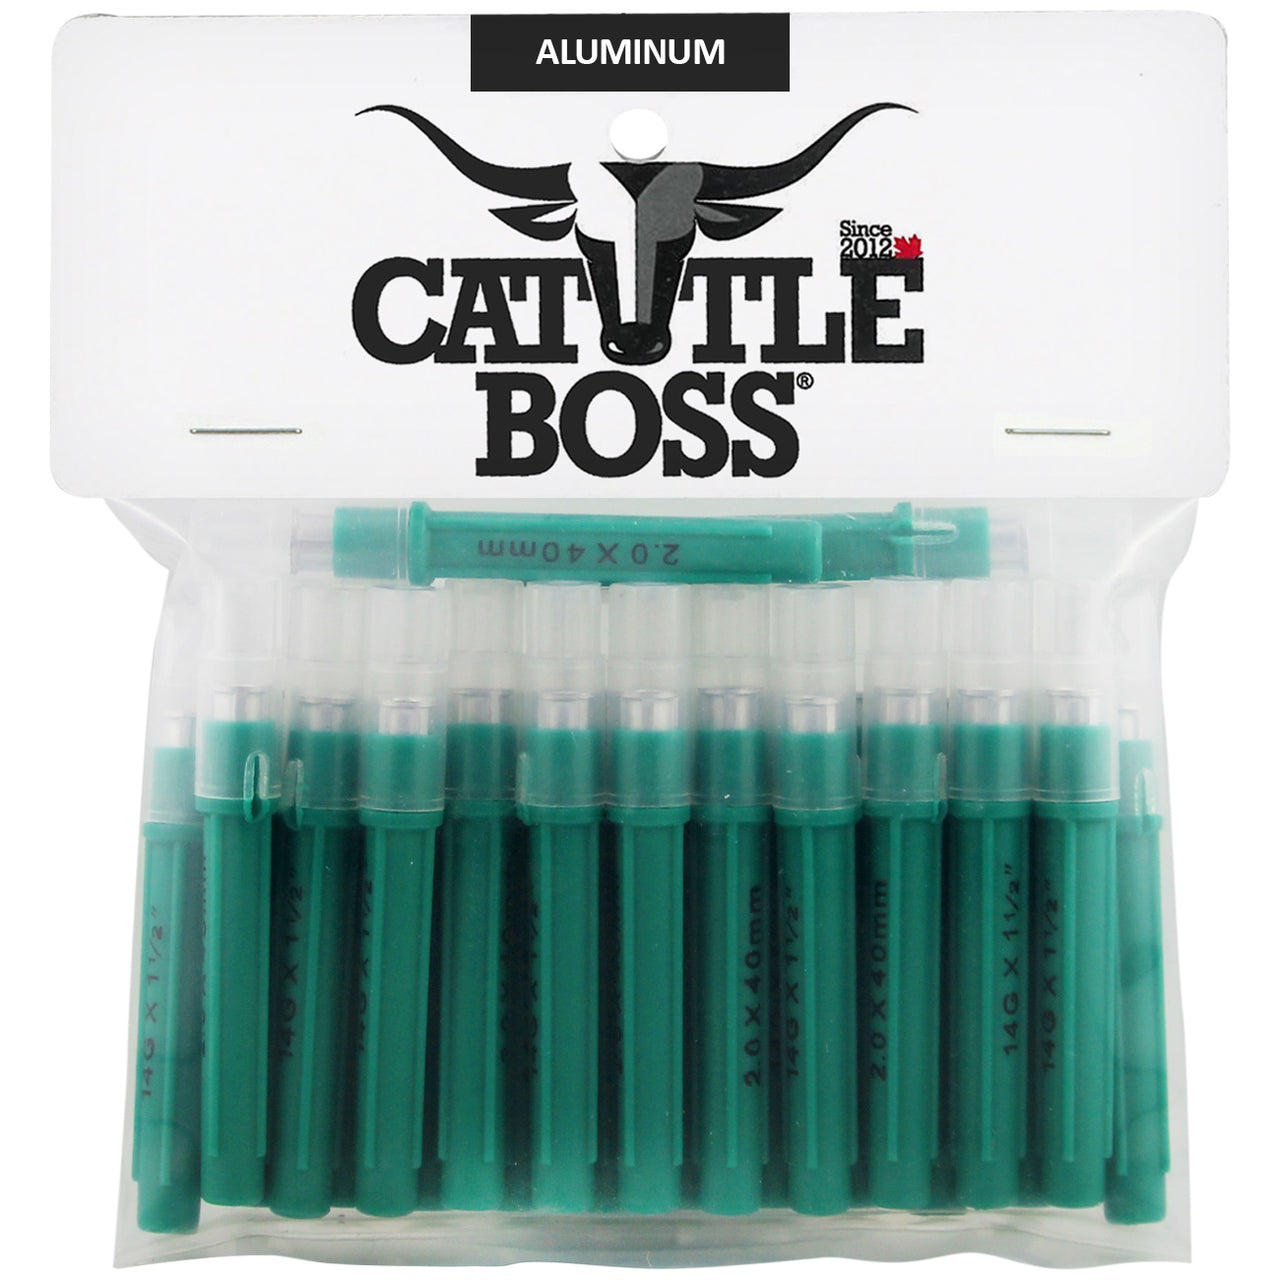 Cattle Boss Aluminum Hub Needles (25 Pack) 14 X 1 1/2 - Drug Administration Cattle Boss - Canada